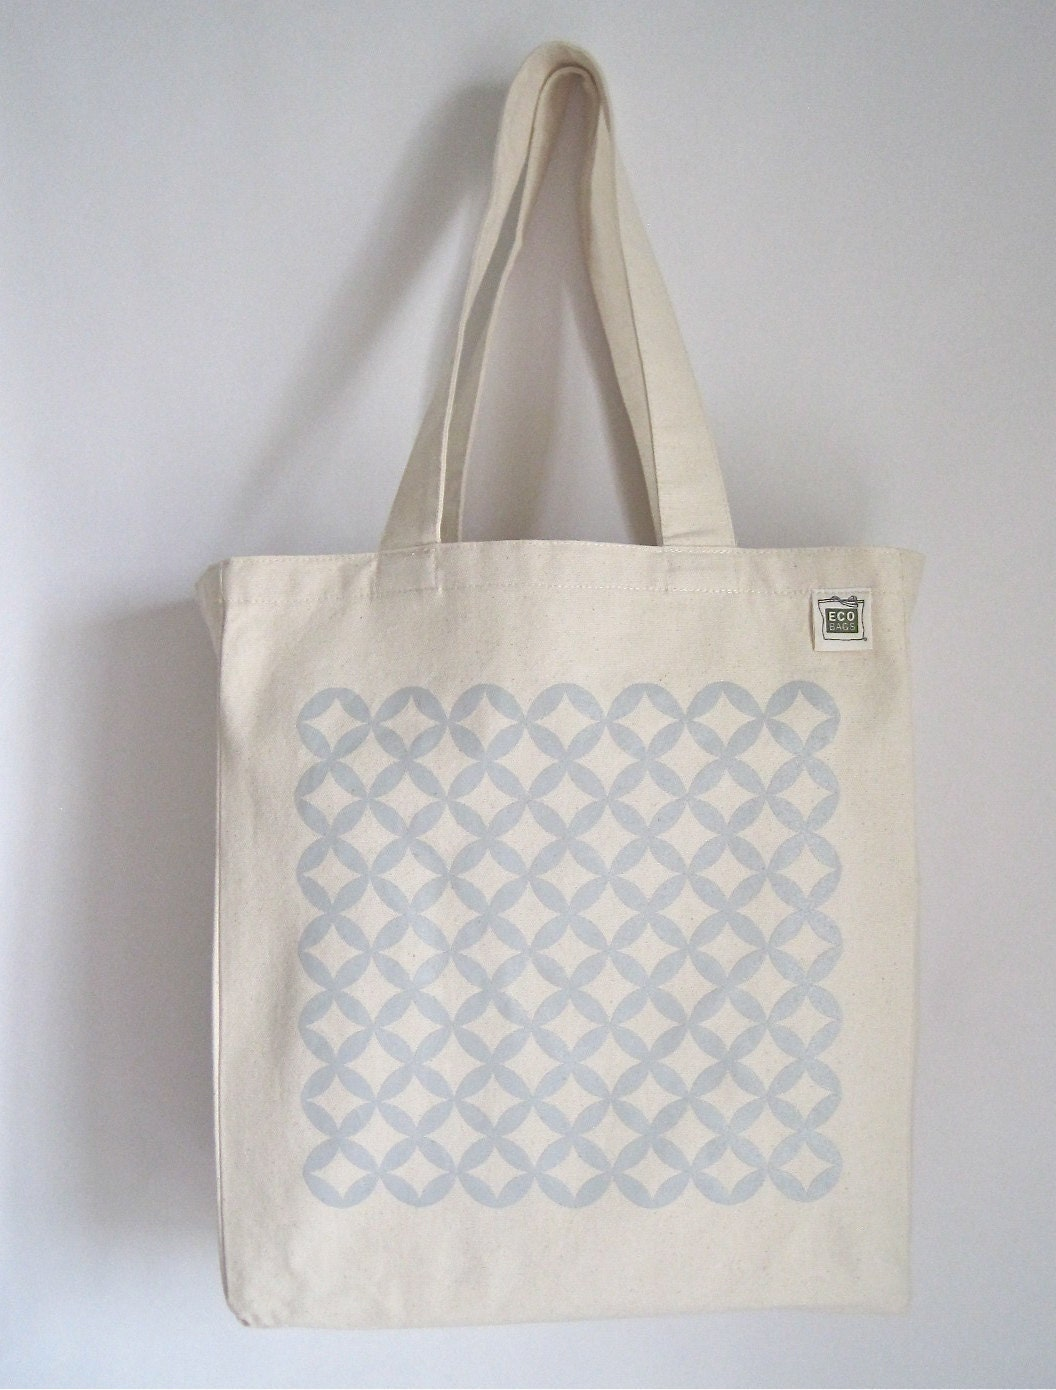 SALE - Eco Canvas Tote - Light Grey Lattice